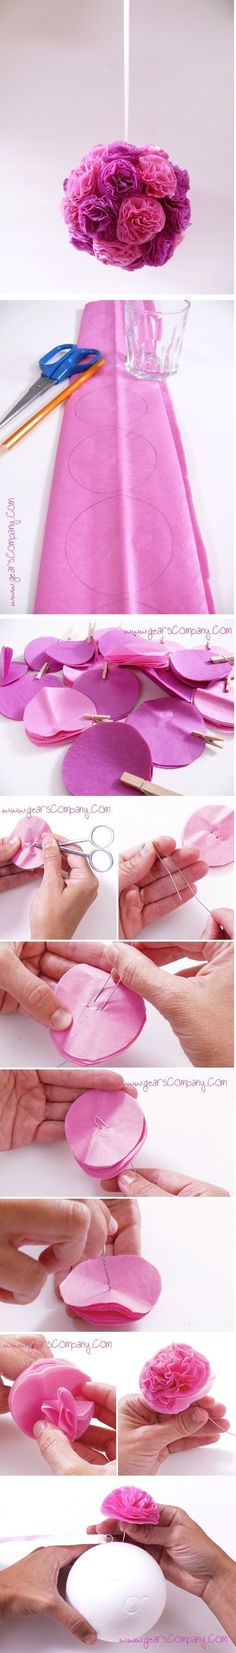 10 Amazing Ideas For Diy Home Decoration 10 | Diy Crafts Projects & Home Design by HOLLACHE